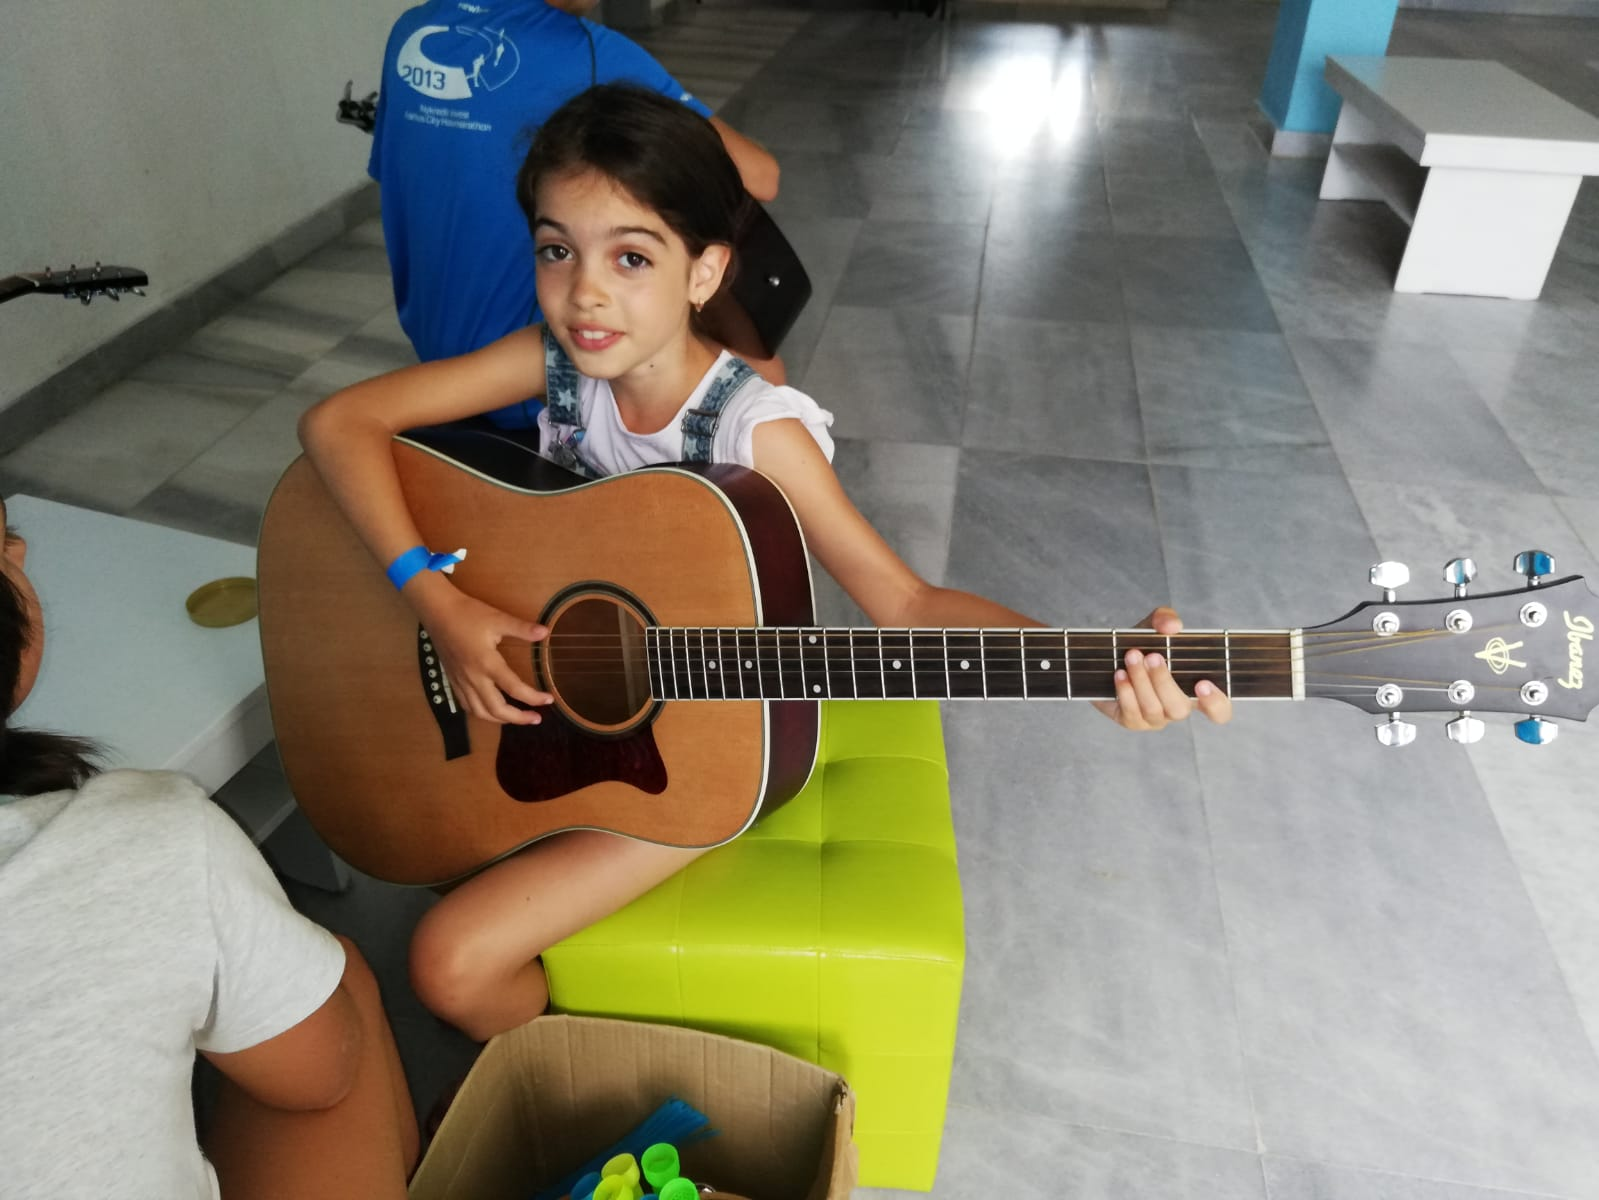 Z camp, day 8 - Music workshop, girl with guitar